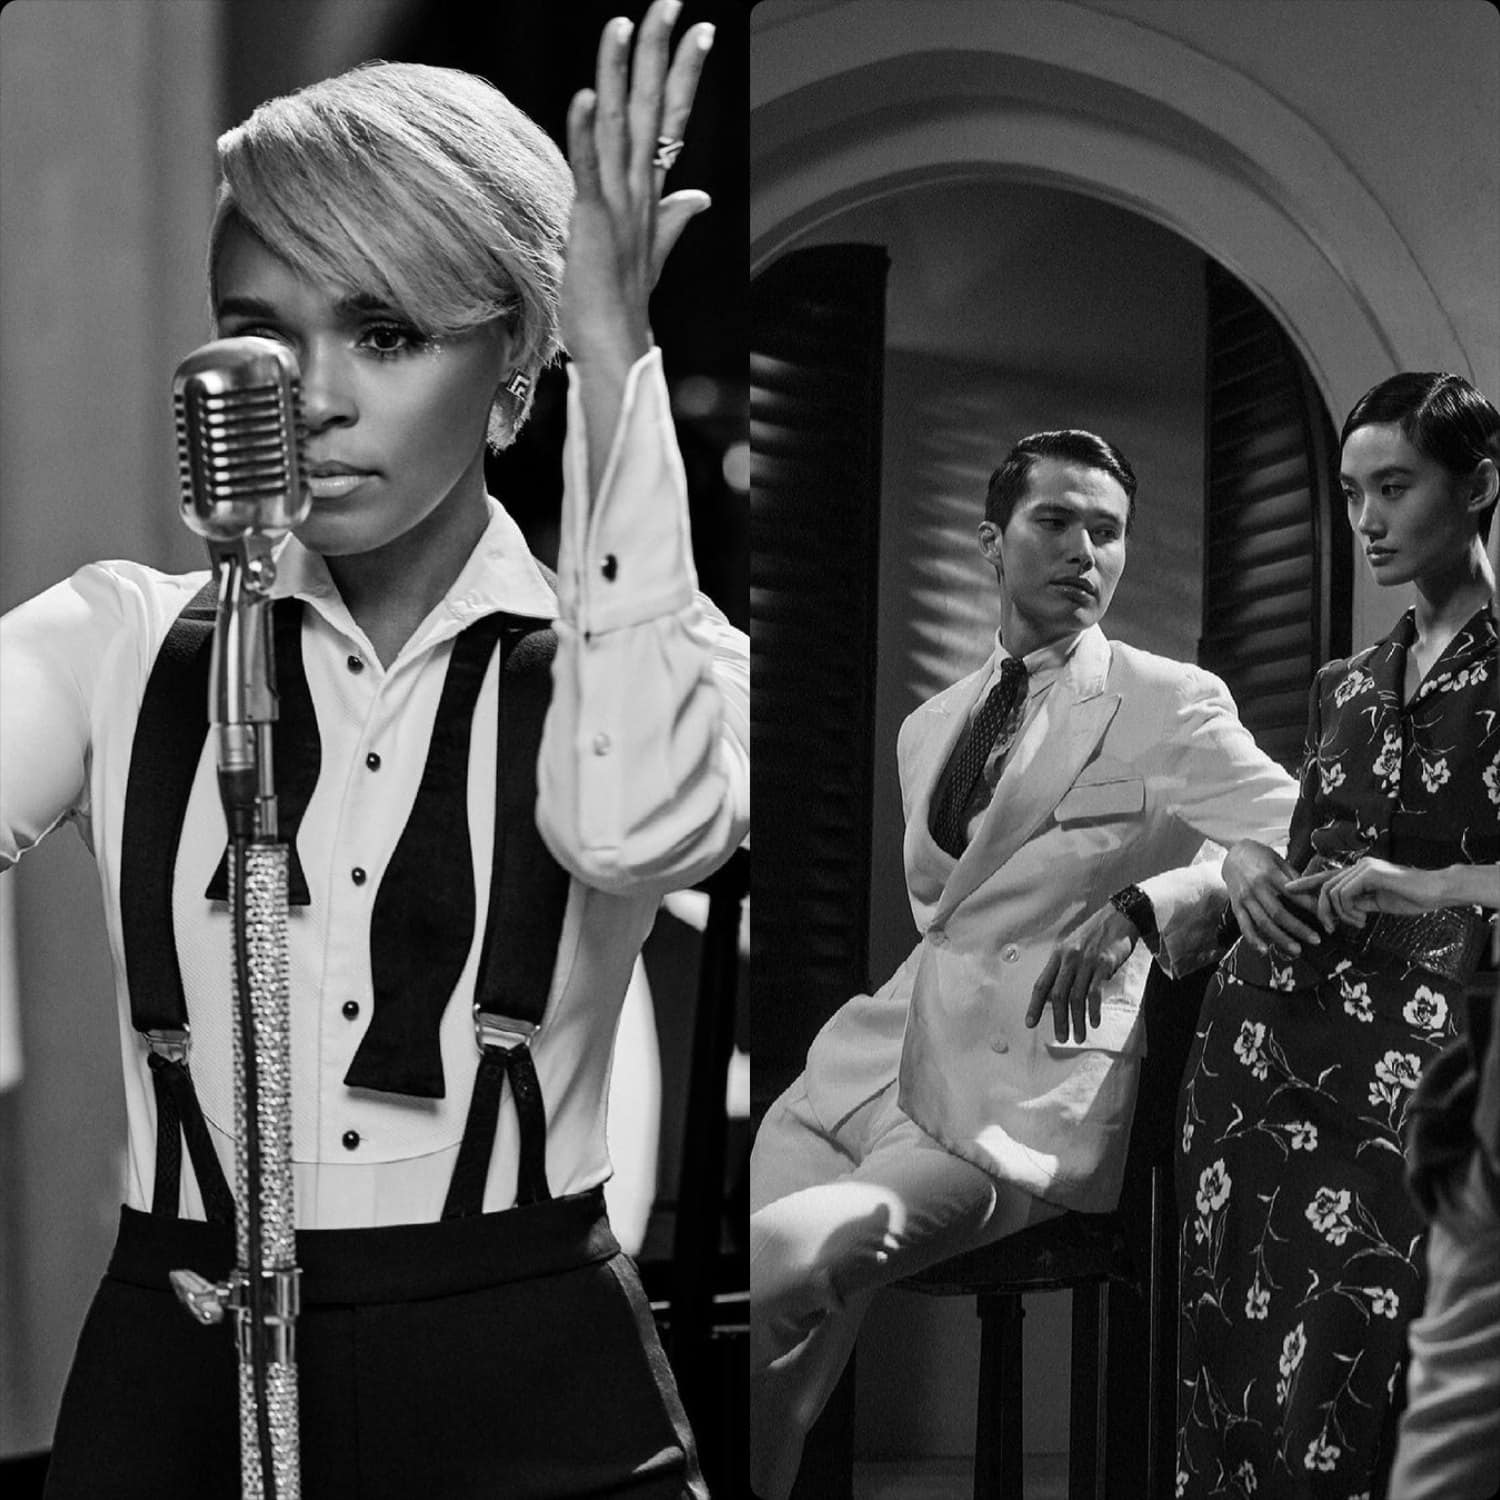 Ralph Lauren Spring 2021 - All or Nothing at All - Janelle Monáe LIVE concert by RUNWAY MAGAZINE